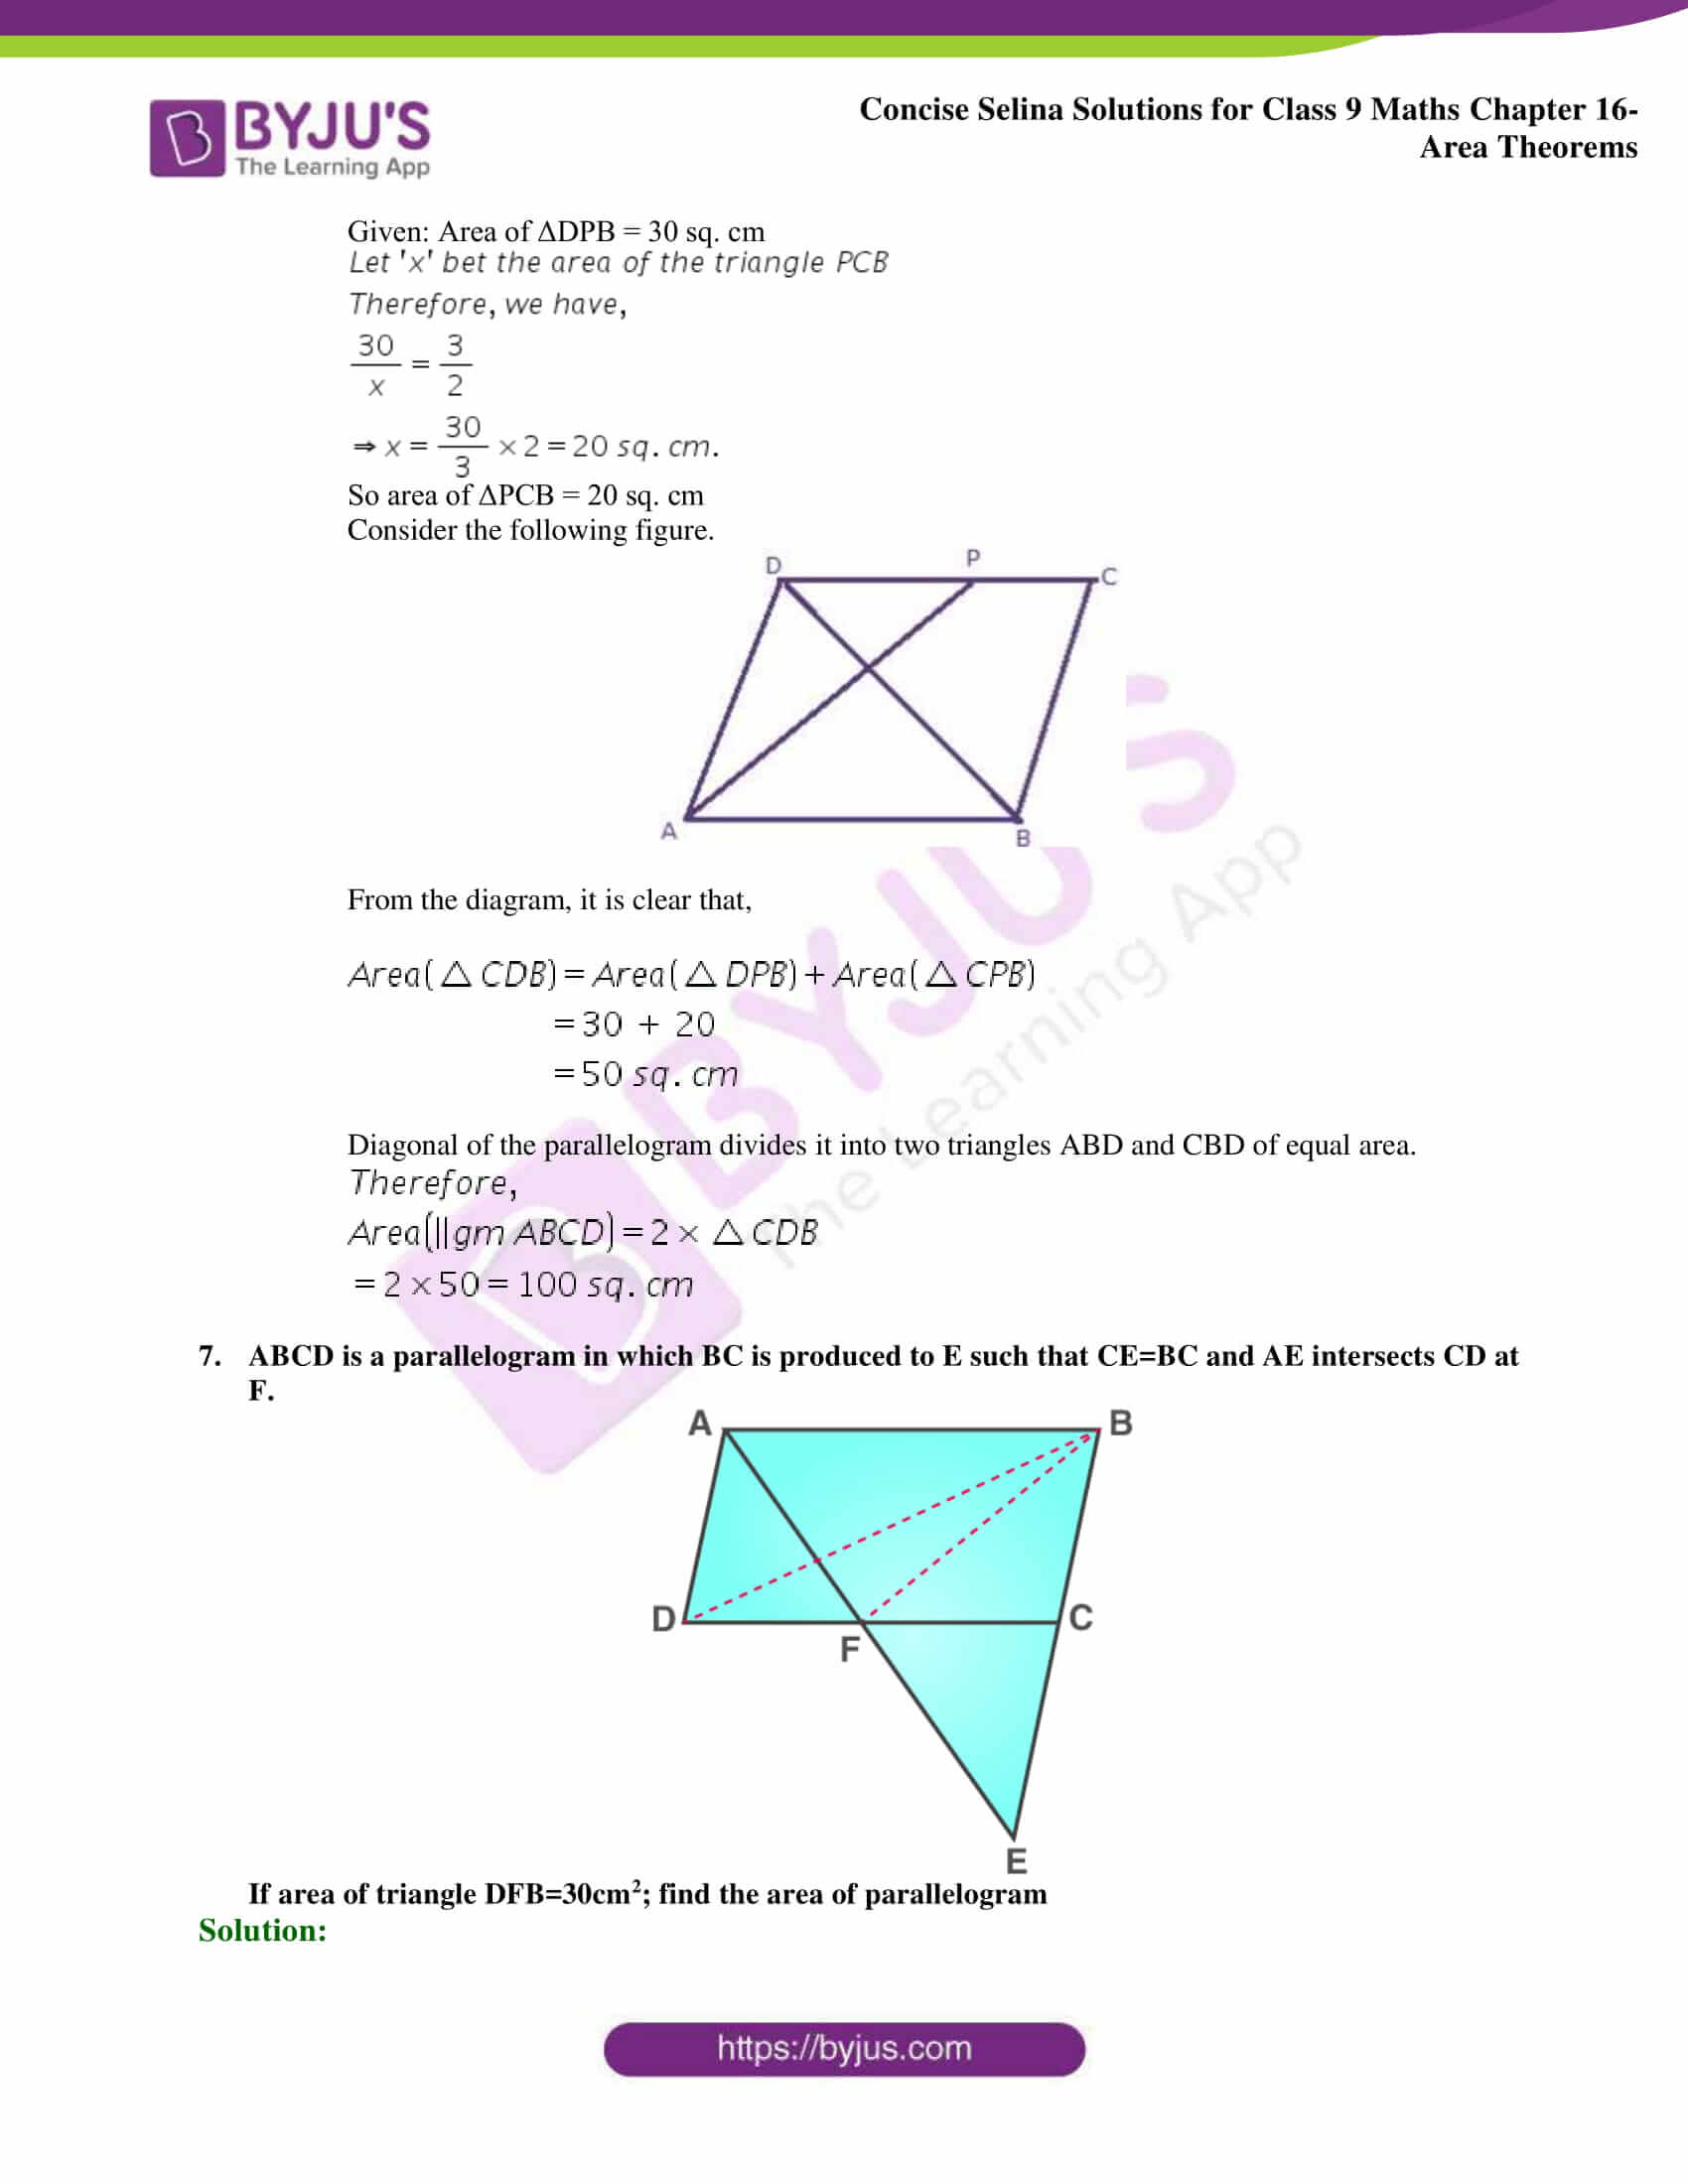 Concise Selina Solutions Class 9 Maths Chapter 16 Area Theorems part 20